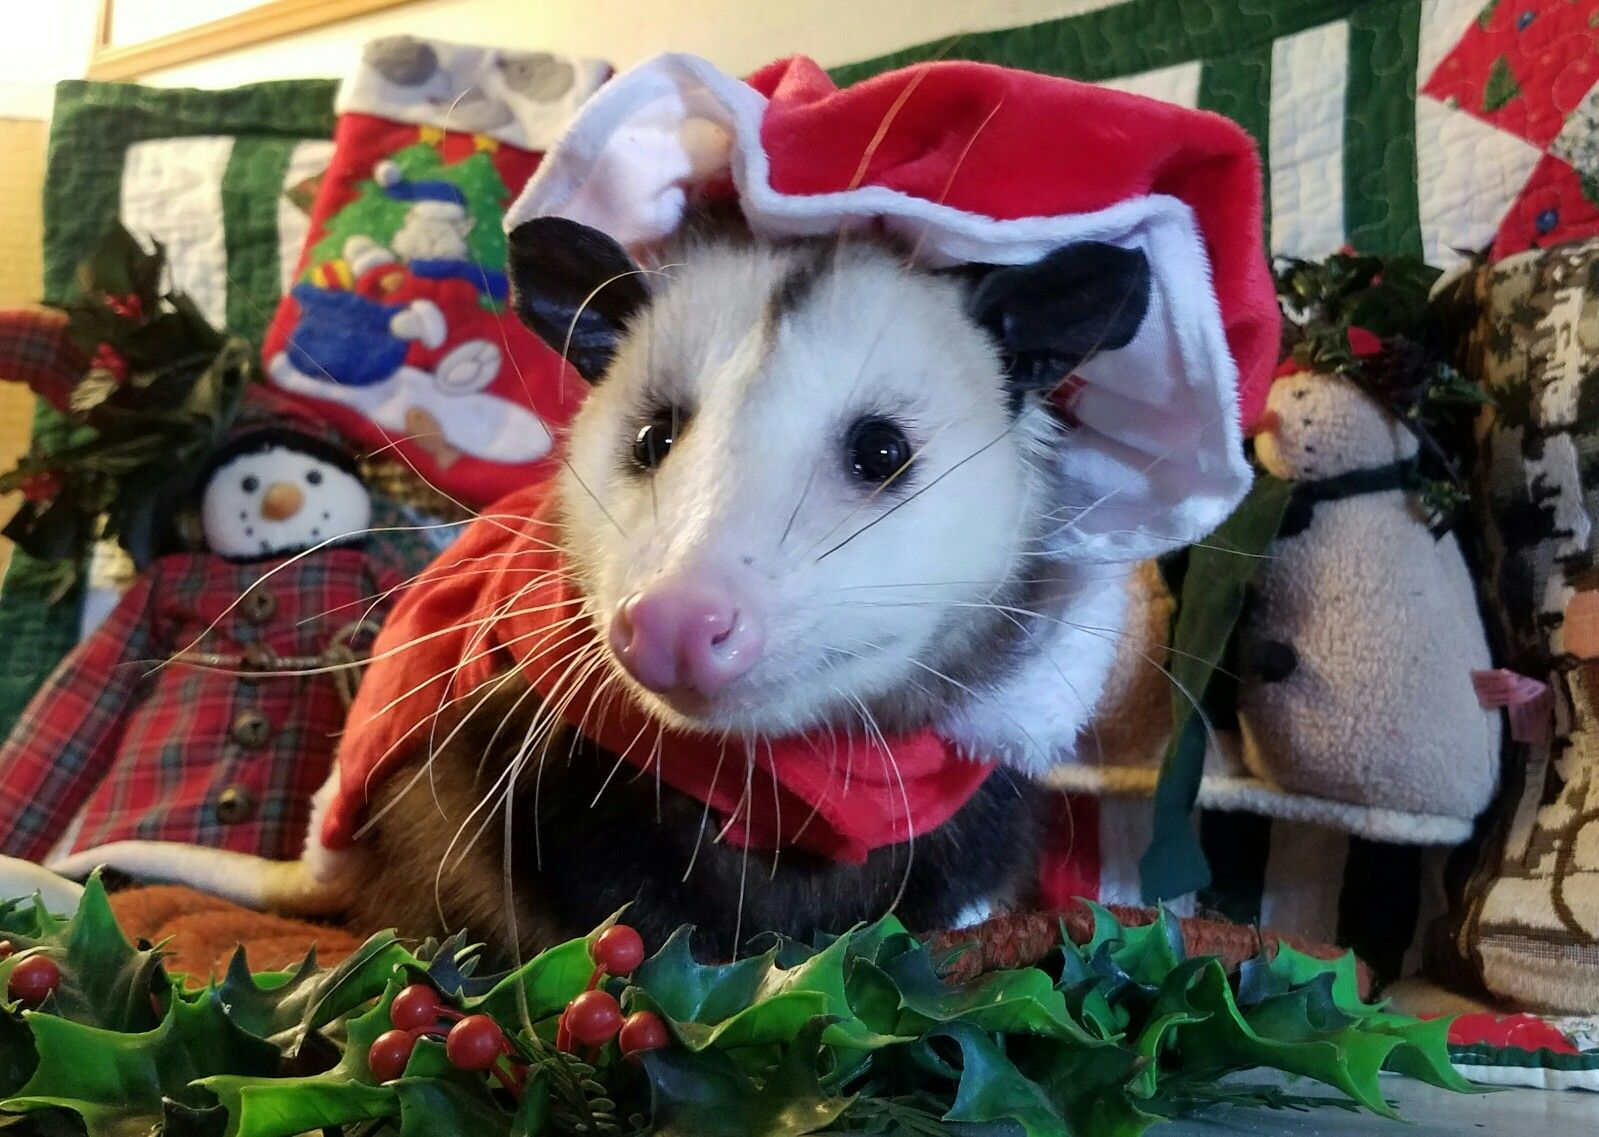 Merry Christmas from my sweet possum girl Ms. Penny | ANIMALS ...